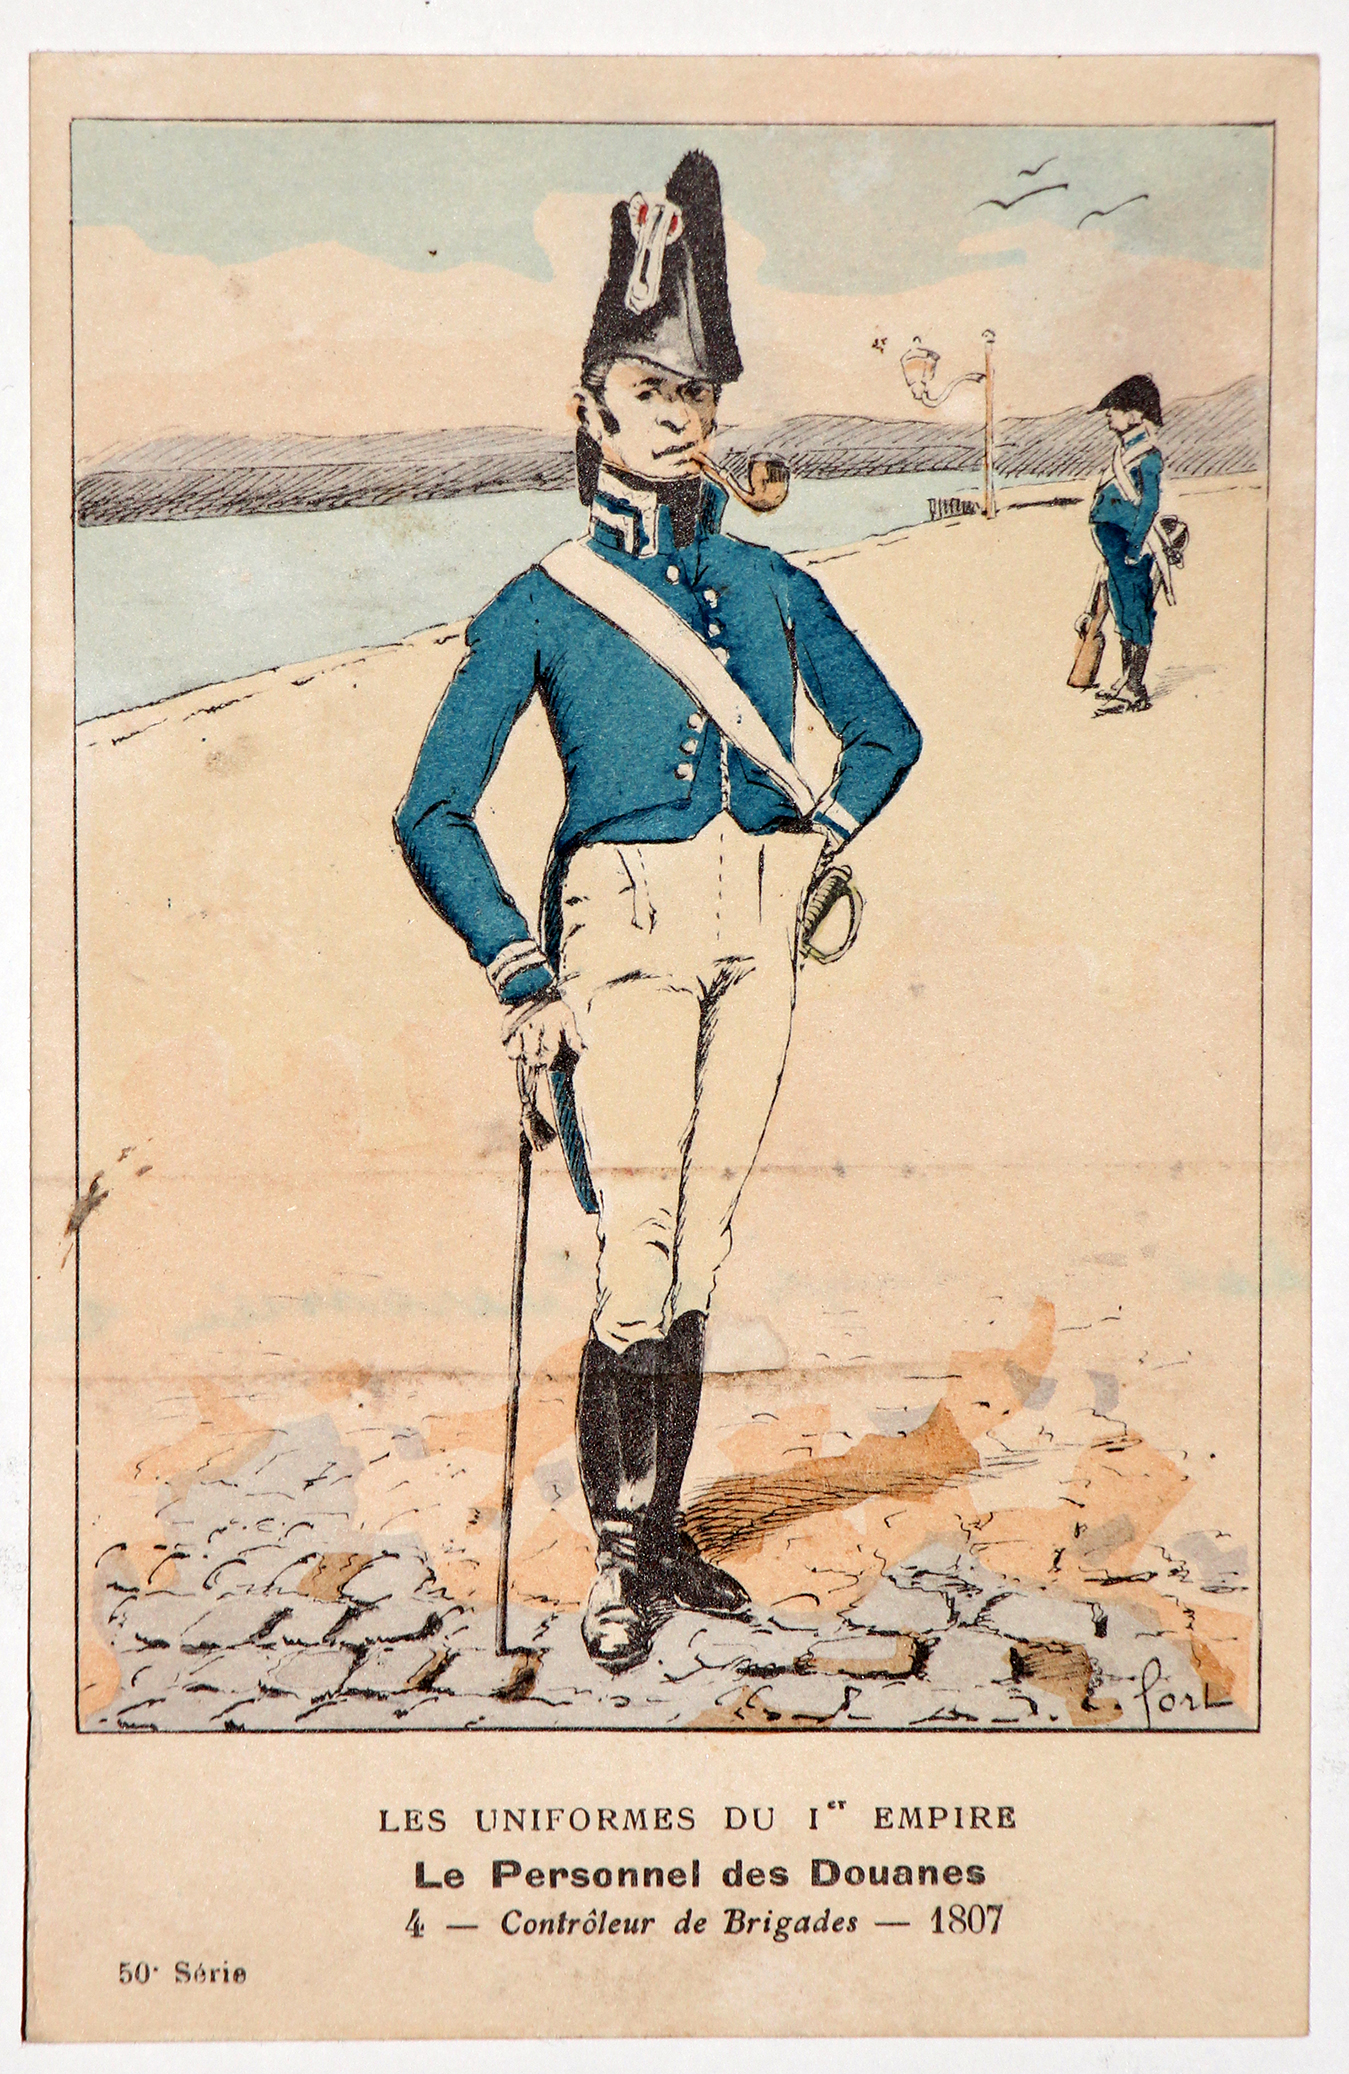 Carte Bucquoy - Les Uniformes du 1er Empire - Série 50 - Carte 4